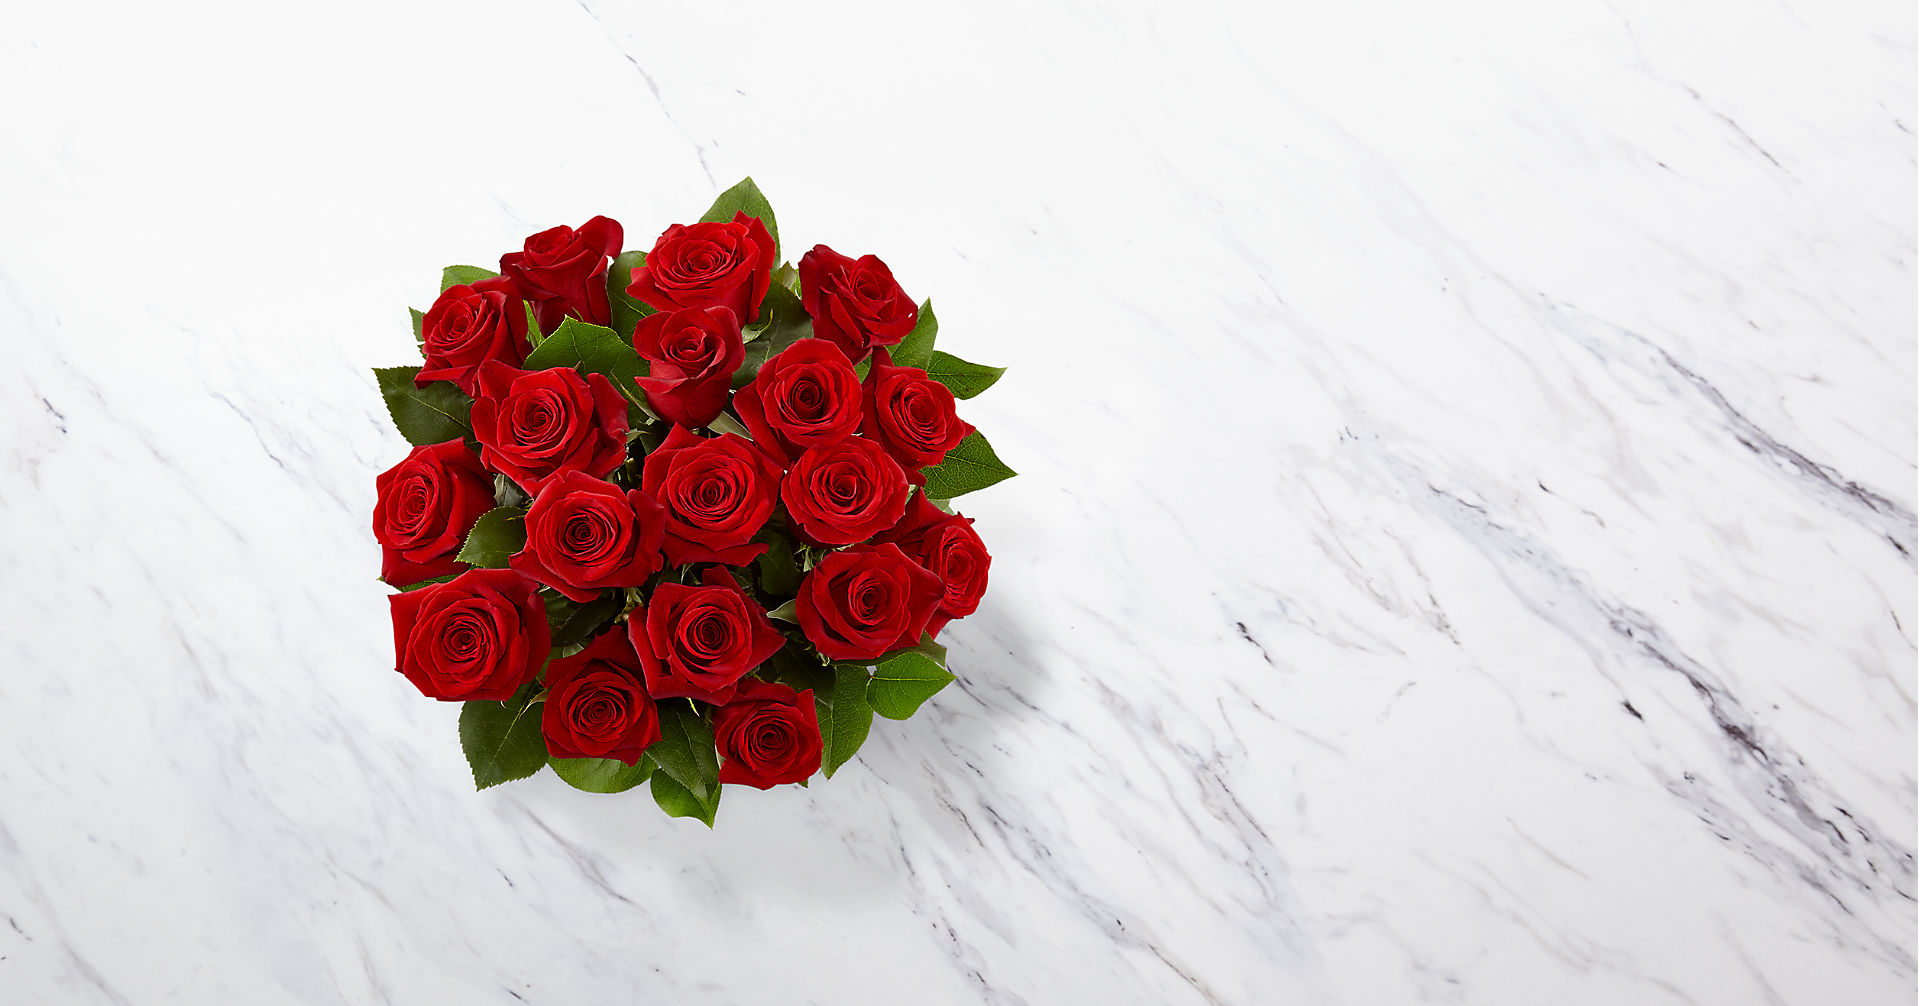 The Long Stem Red Rose Bouquet - Image 2 Of 2